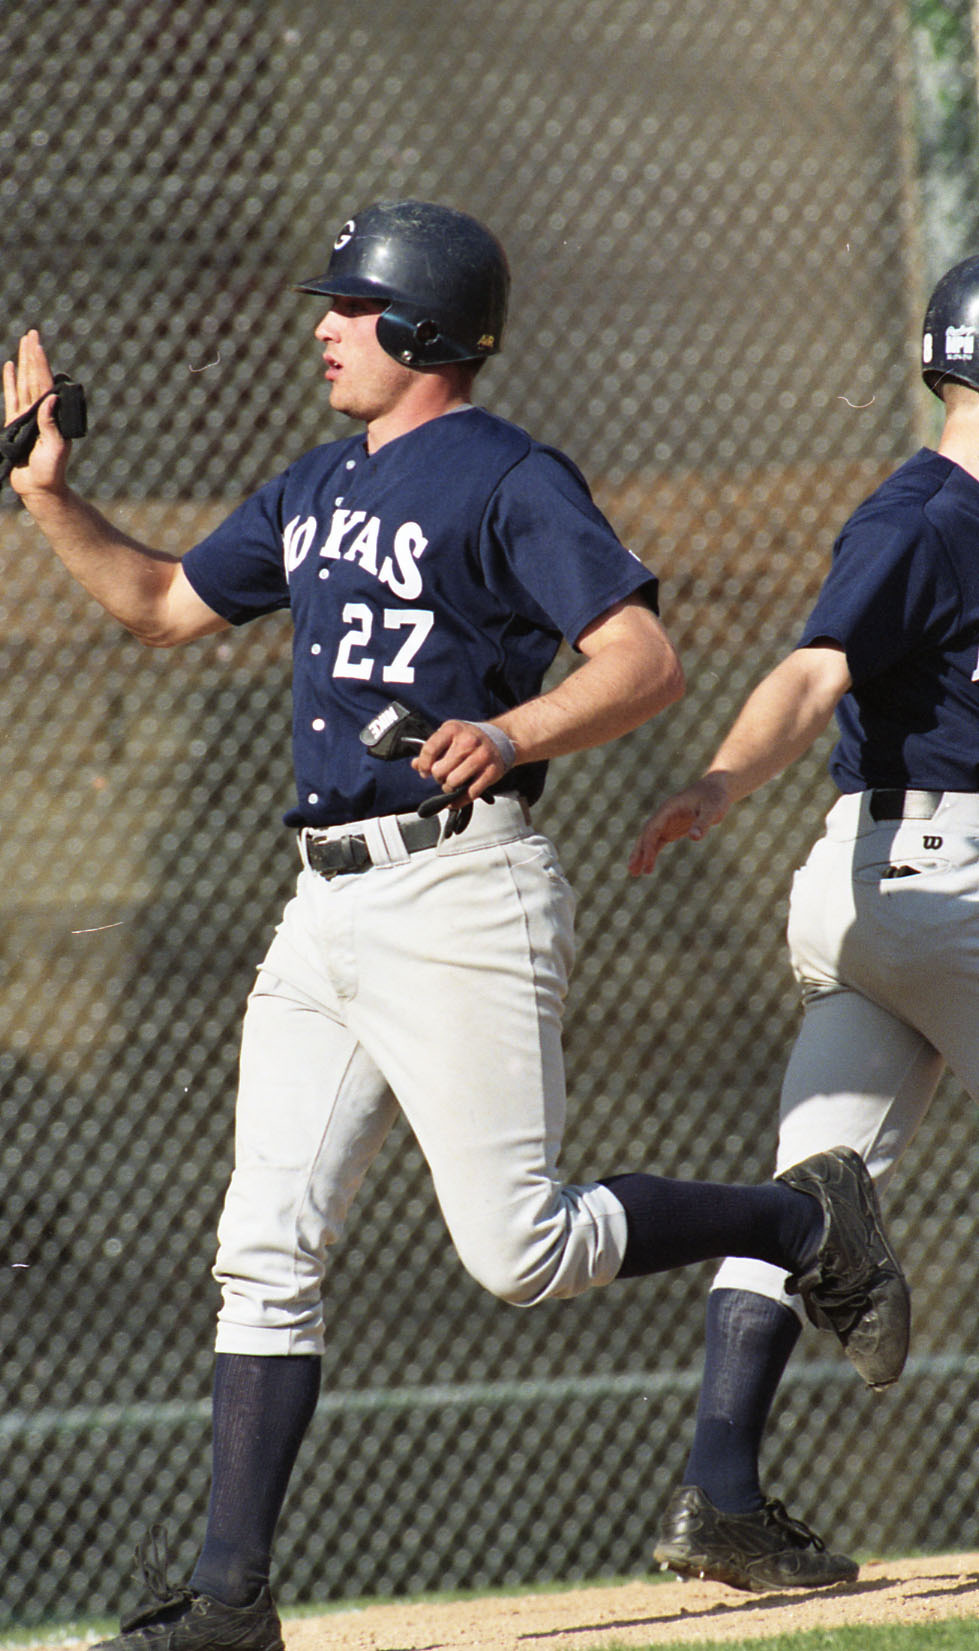 Farley finished with a .274 batting average, 12 home runs and 100 RBI in 193 career games for the Hoyas.